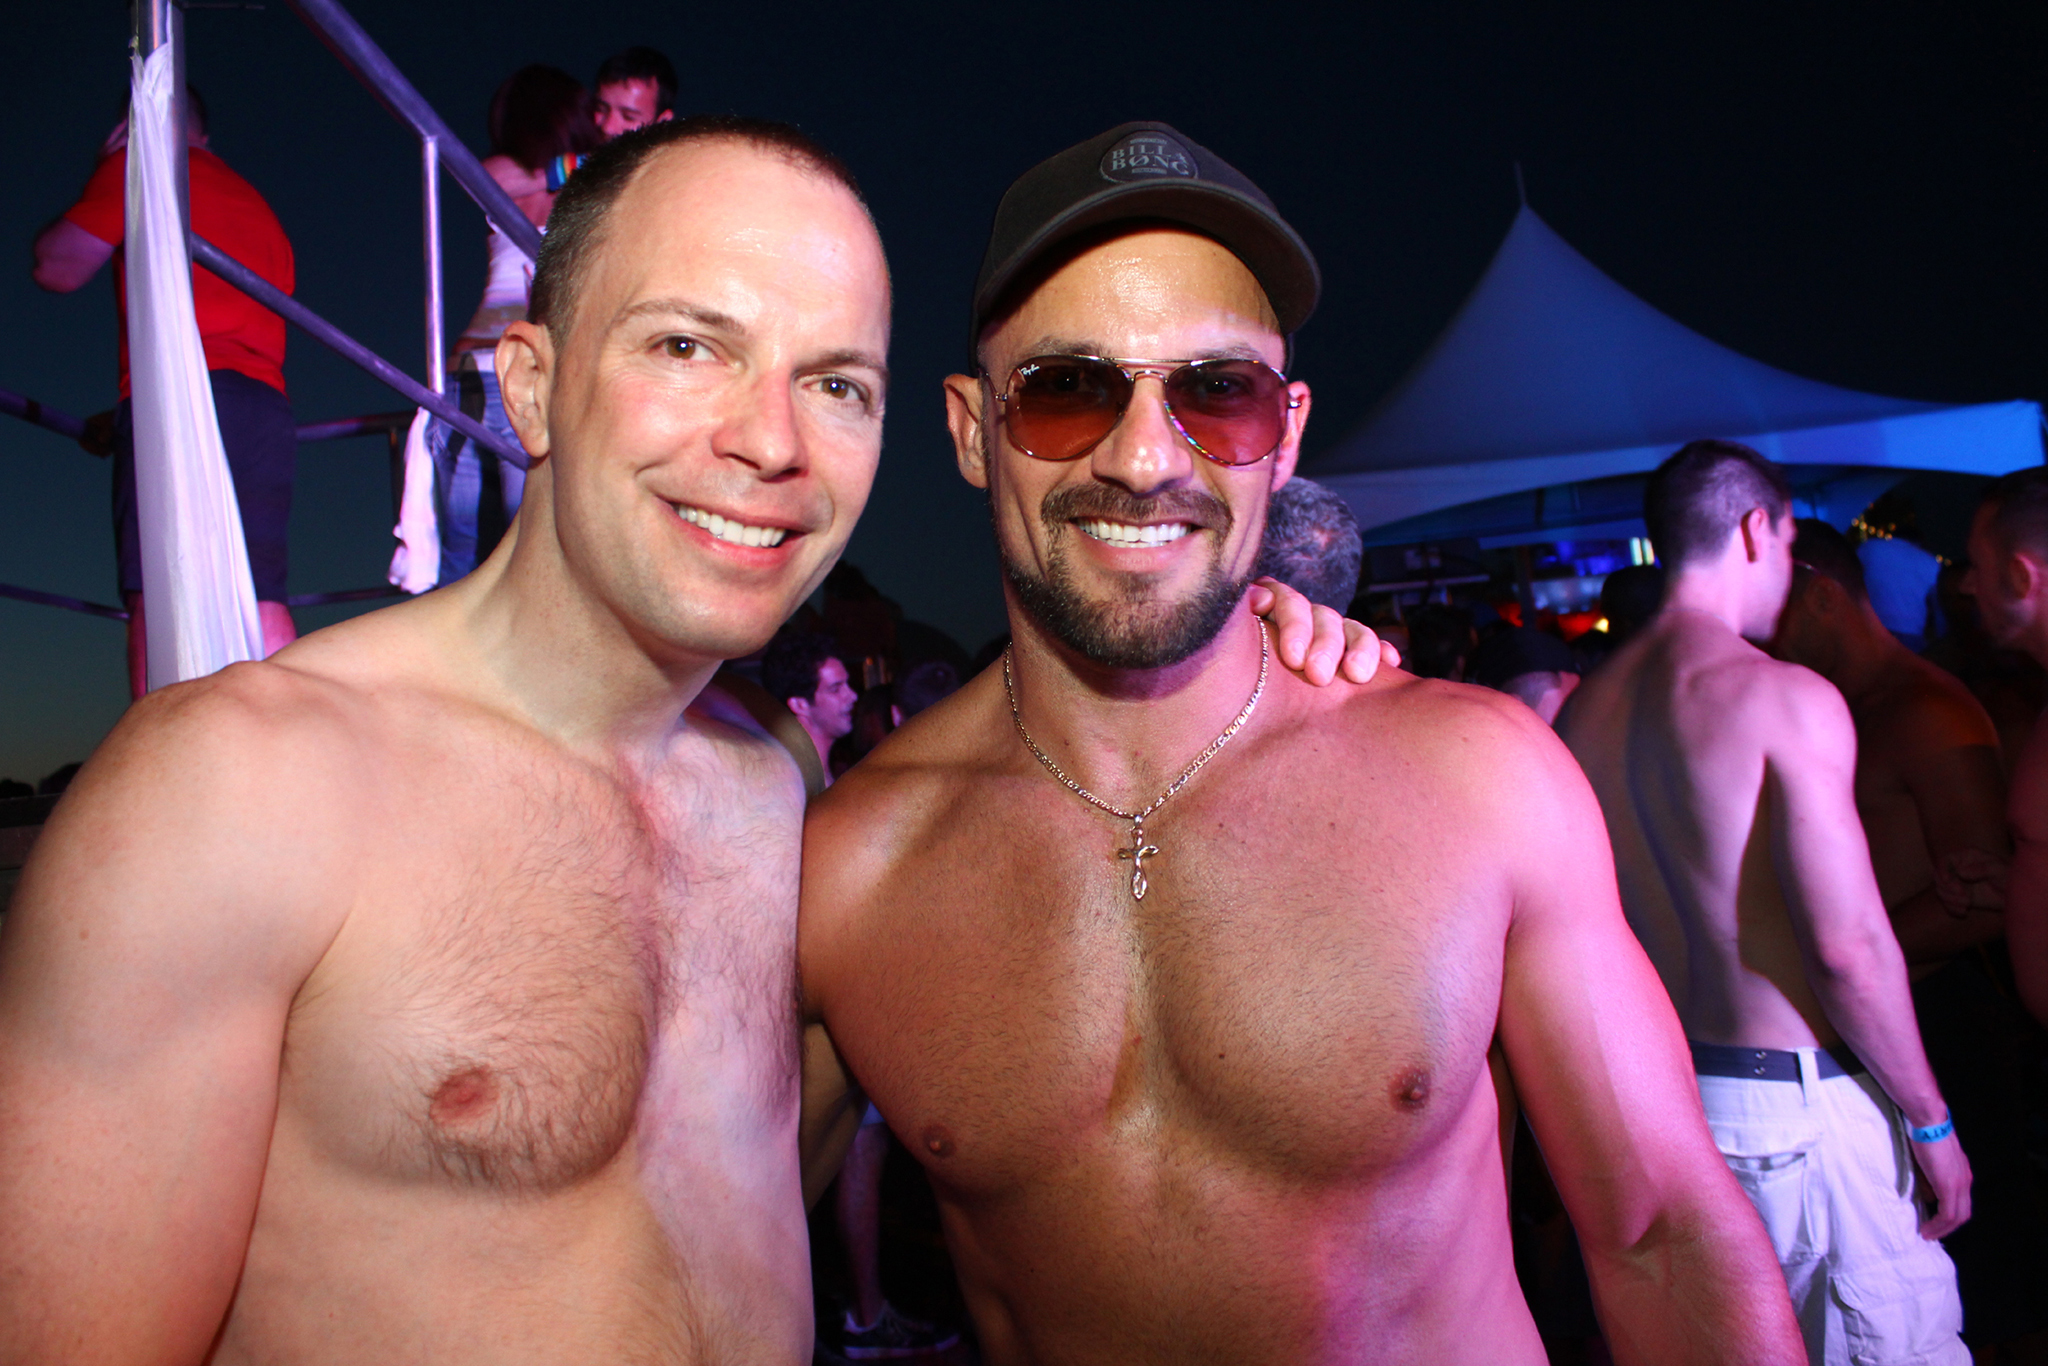 Gay Pride NYC: The Day Party at Pier 83 (SLIDE SHOW)